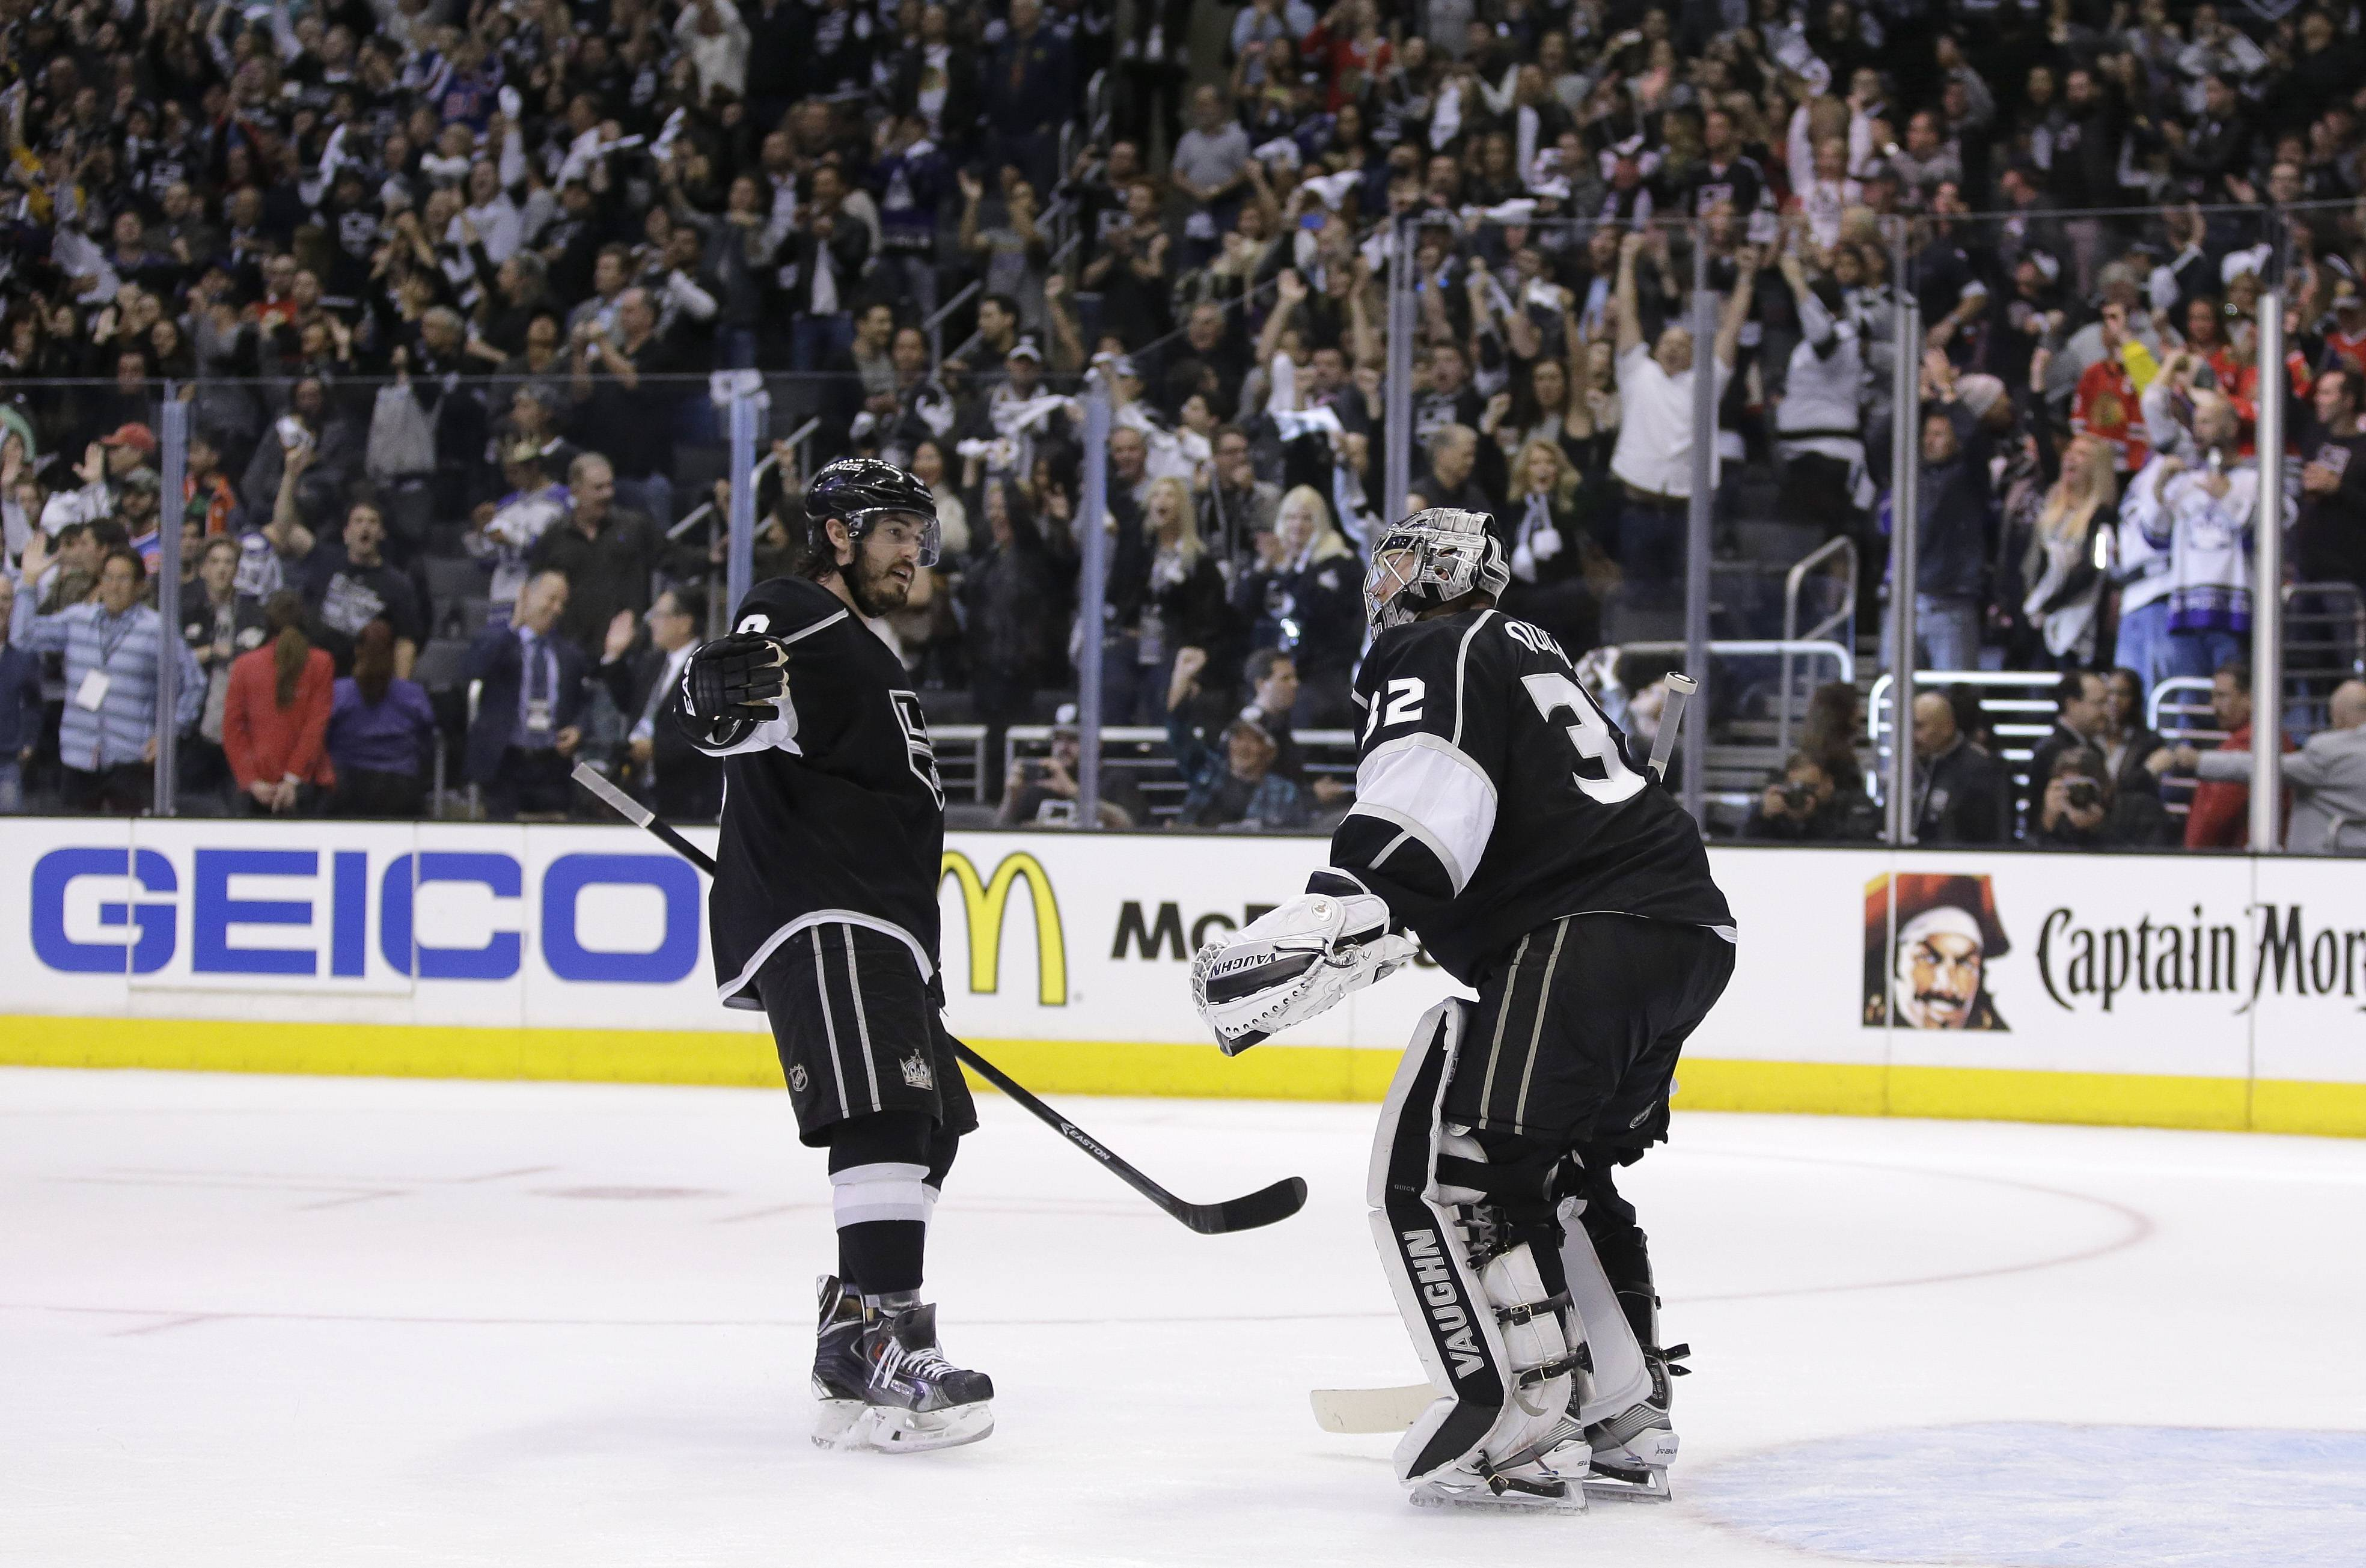 Los Angeles Kings defenseman Drew Doughty, left, celebrates a win against the Chicago Blackhawks with goalie Jonathan Quick after Game 3 of the Western Conference finals of the NHL hockey Stanley Cup playoffs in Los Angeles, Saturday, May 24, 2014.